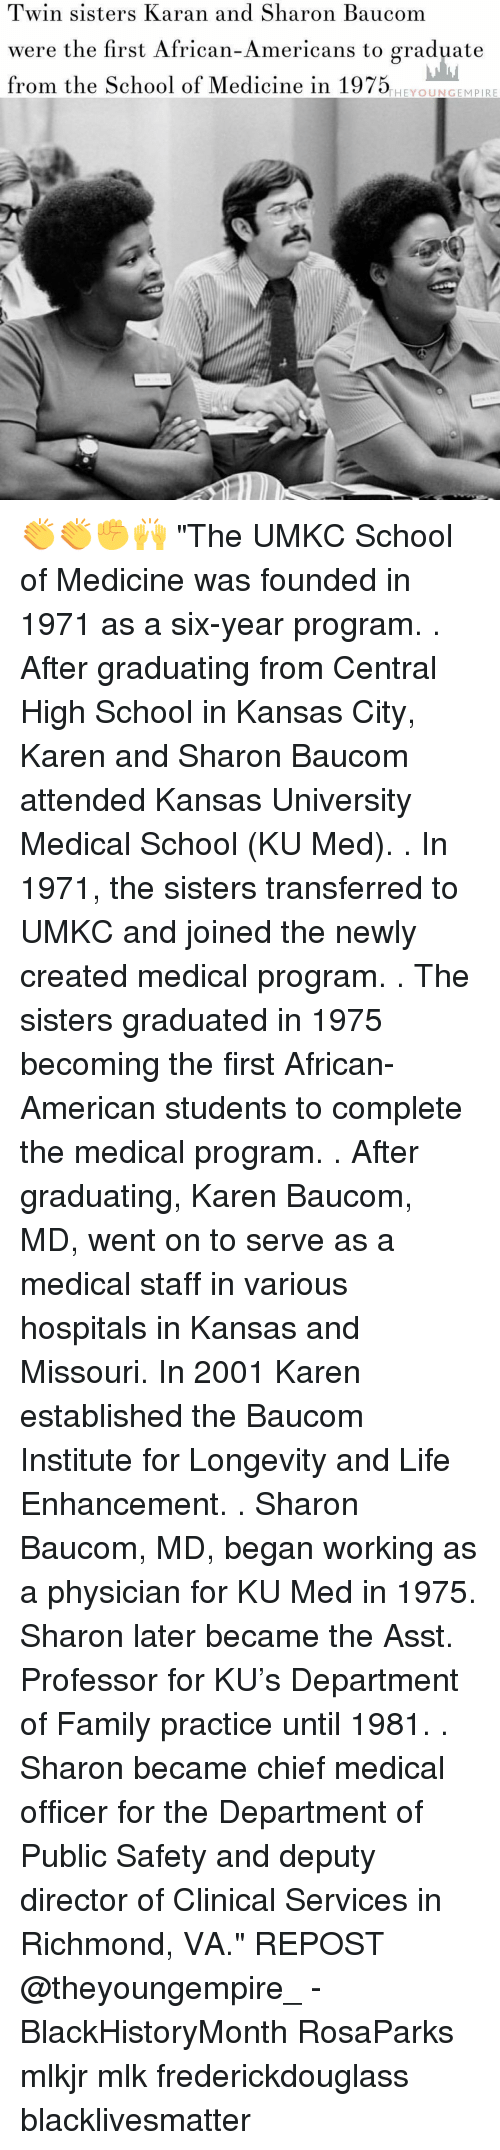 "Memes, The Departed, and Missouri: Twin sisters Karan and Sharon Baucom  were the first African-Americans  to graduate  from the School of Medicine in 1975  THEY OUN GEM PIRE 👏👏✊🙌 ""The UMKC School of Medicine was founded in 1971 as a six-year program. . After graduating from Central High School in Kansas City, Karen and Sharon Baucom attended Kansas University Medical School (KU Med). . In 1971, the sisters transferred to UMKC and joined the newly created medical program. . The sisters graduated in 1975 becoming the first African-American students to complete the medical program. . After graduating, Karen Baucom, MD, went on to serve as a medical staff in various hospitals in Kansas and Missouri. In 2001 Karen established the Baucom Institute for Longevity and Life Enhancement. . Sharon Baucom, MD, began working as a physician for KU Med in 1975. Sharon later became the Asst. Professor for KU's Department of Family practice until 1981. . Sharon became chief medical officer for the Department of Public Safety and deputy director of Clinical Services in Richmond, VA."" REPOST @theyoungempire_ - BlackHistoryMonth RosaParks mlkjr mlk frederickdouglass blacklivesmatter"